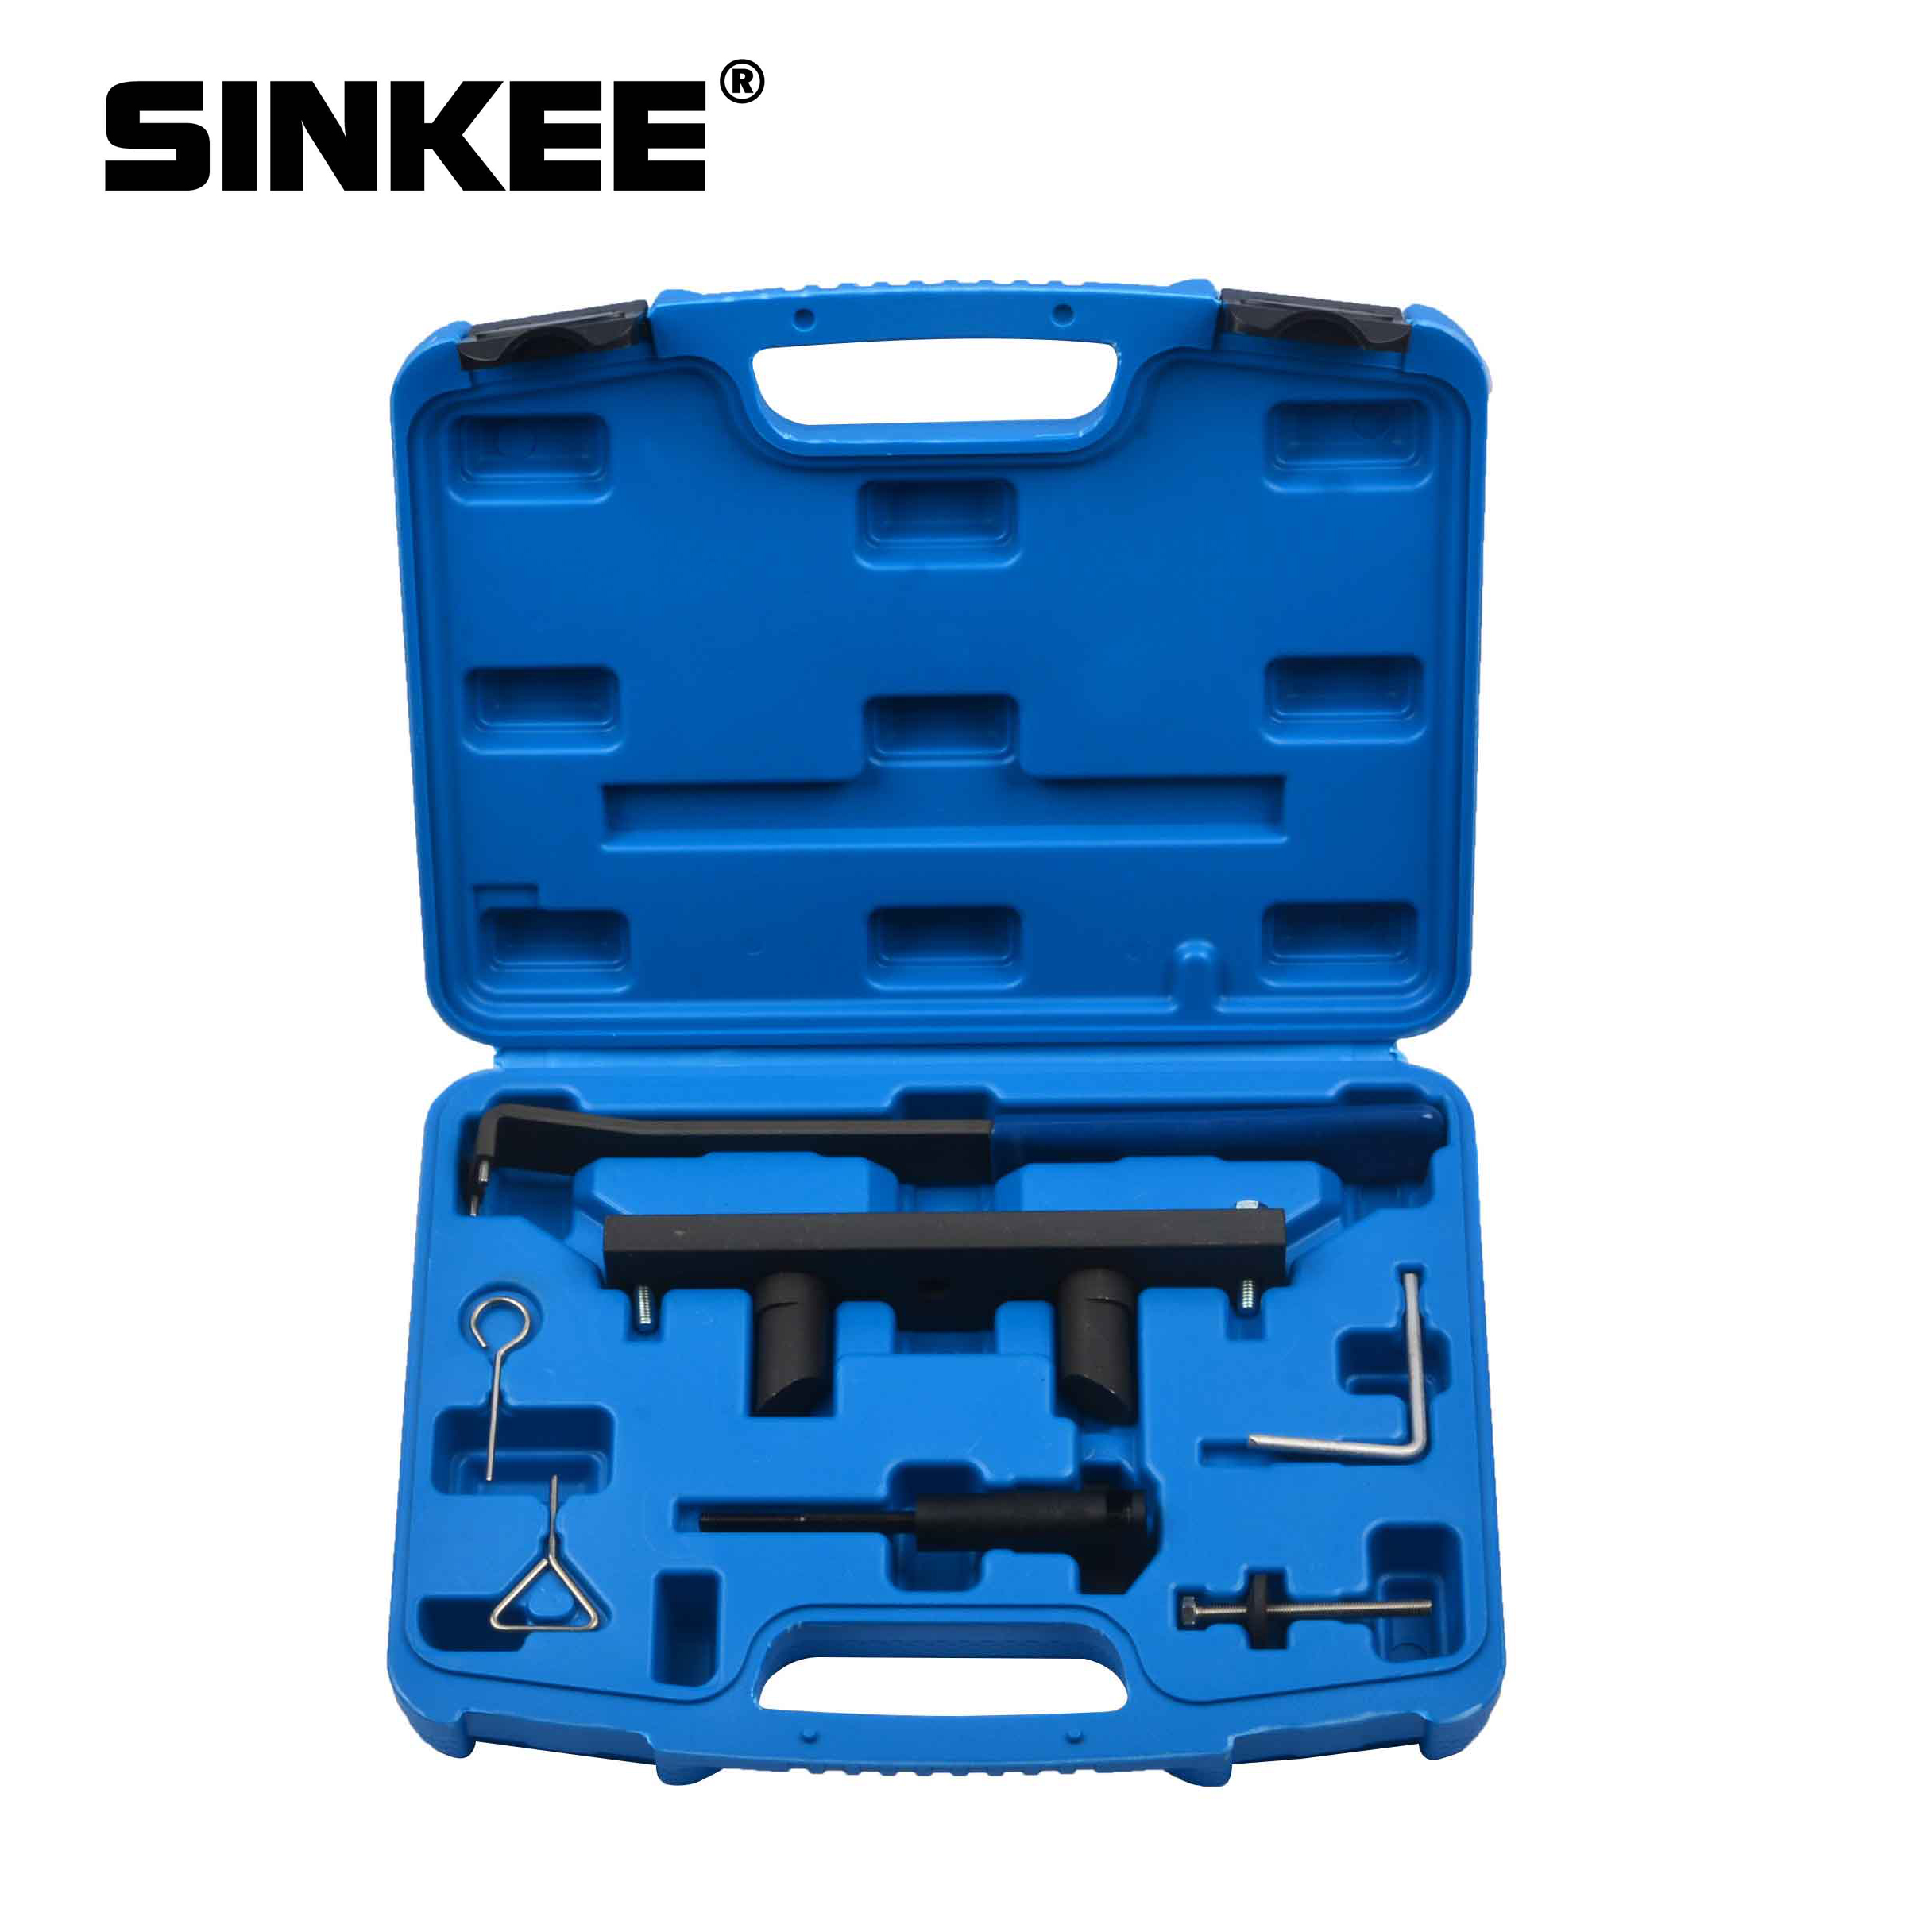 Engine Camshaft Alignment Timing Tool Kit For VW AUDI A2 A3 A4 2.0 FSI TFSI SOHC Petrol Turbo For Golf Passat SK1115